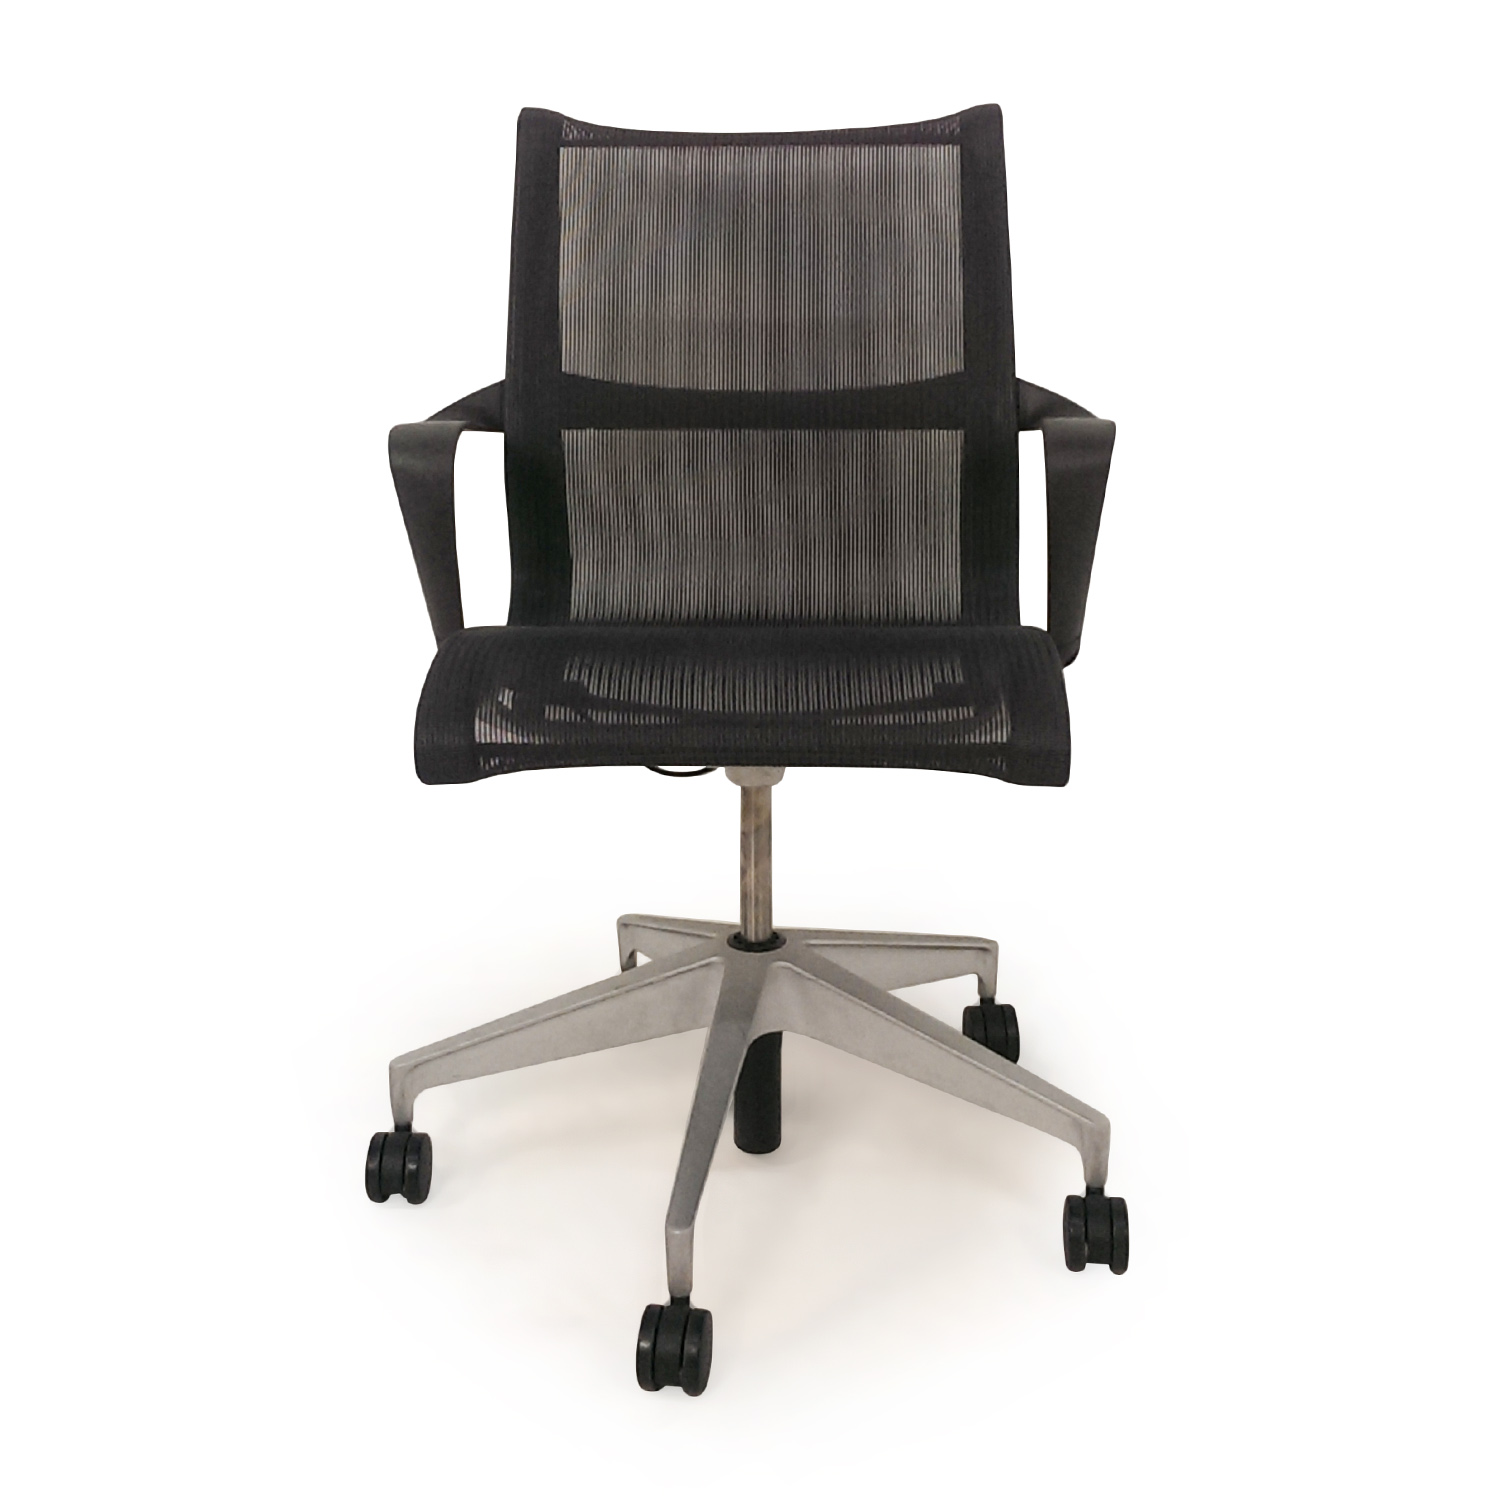 ergonomic chair dimensions stool white 58 off adjustable black office desk chairs